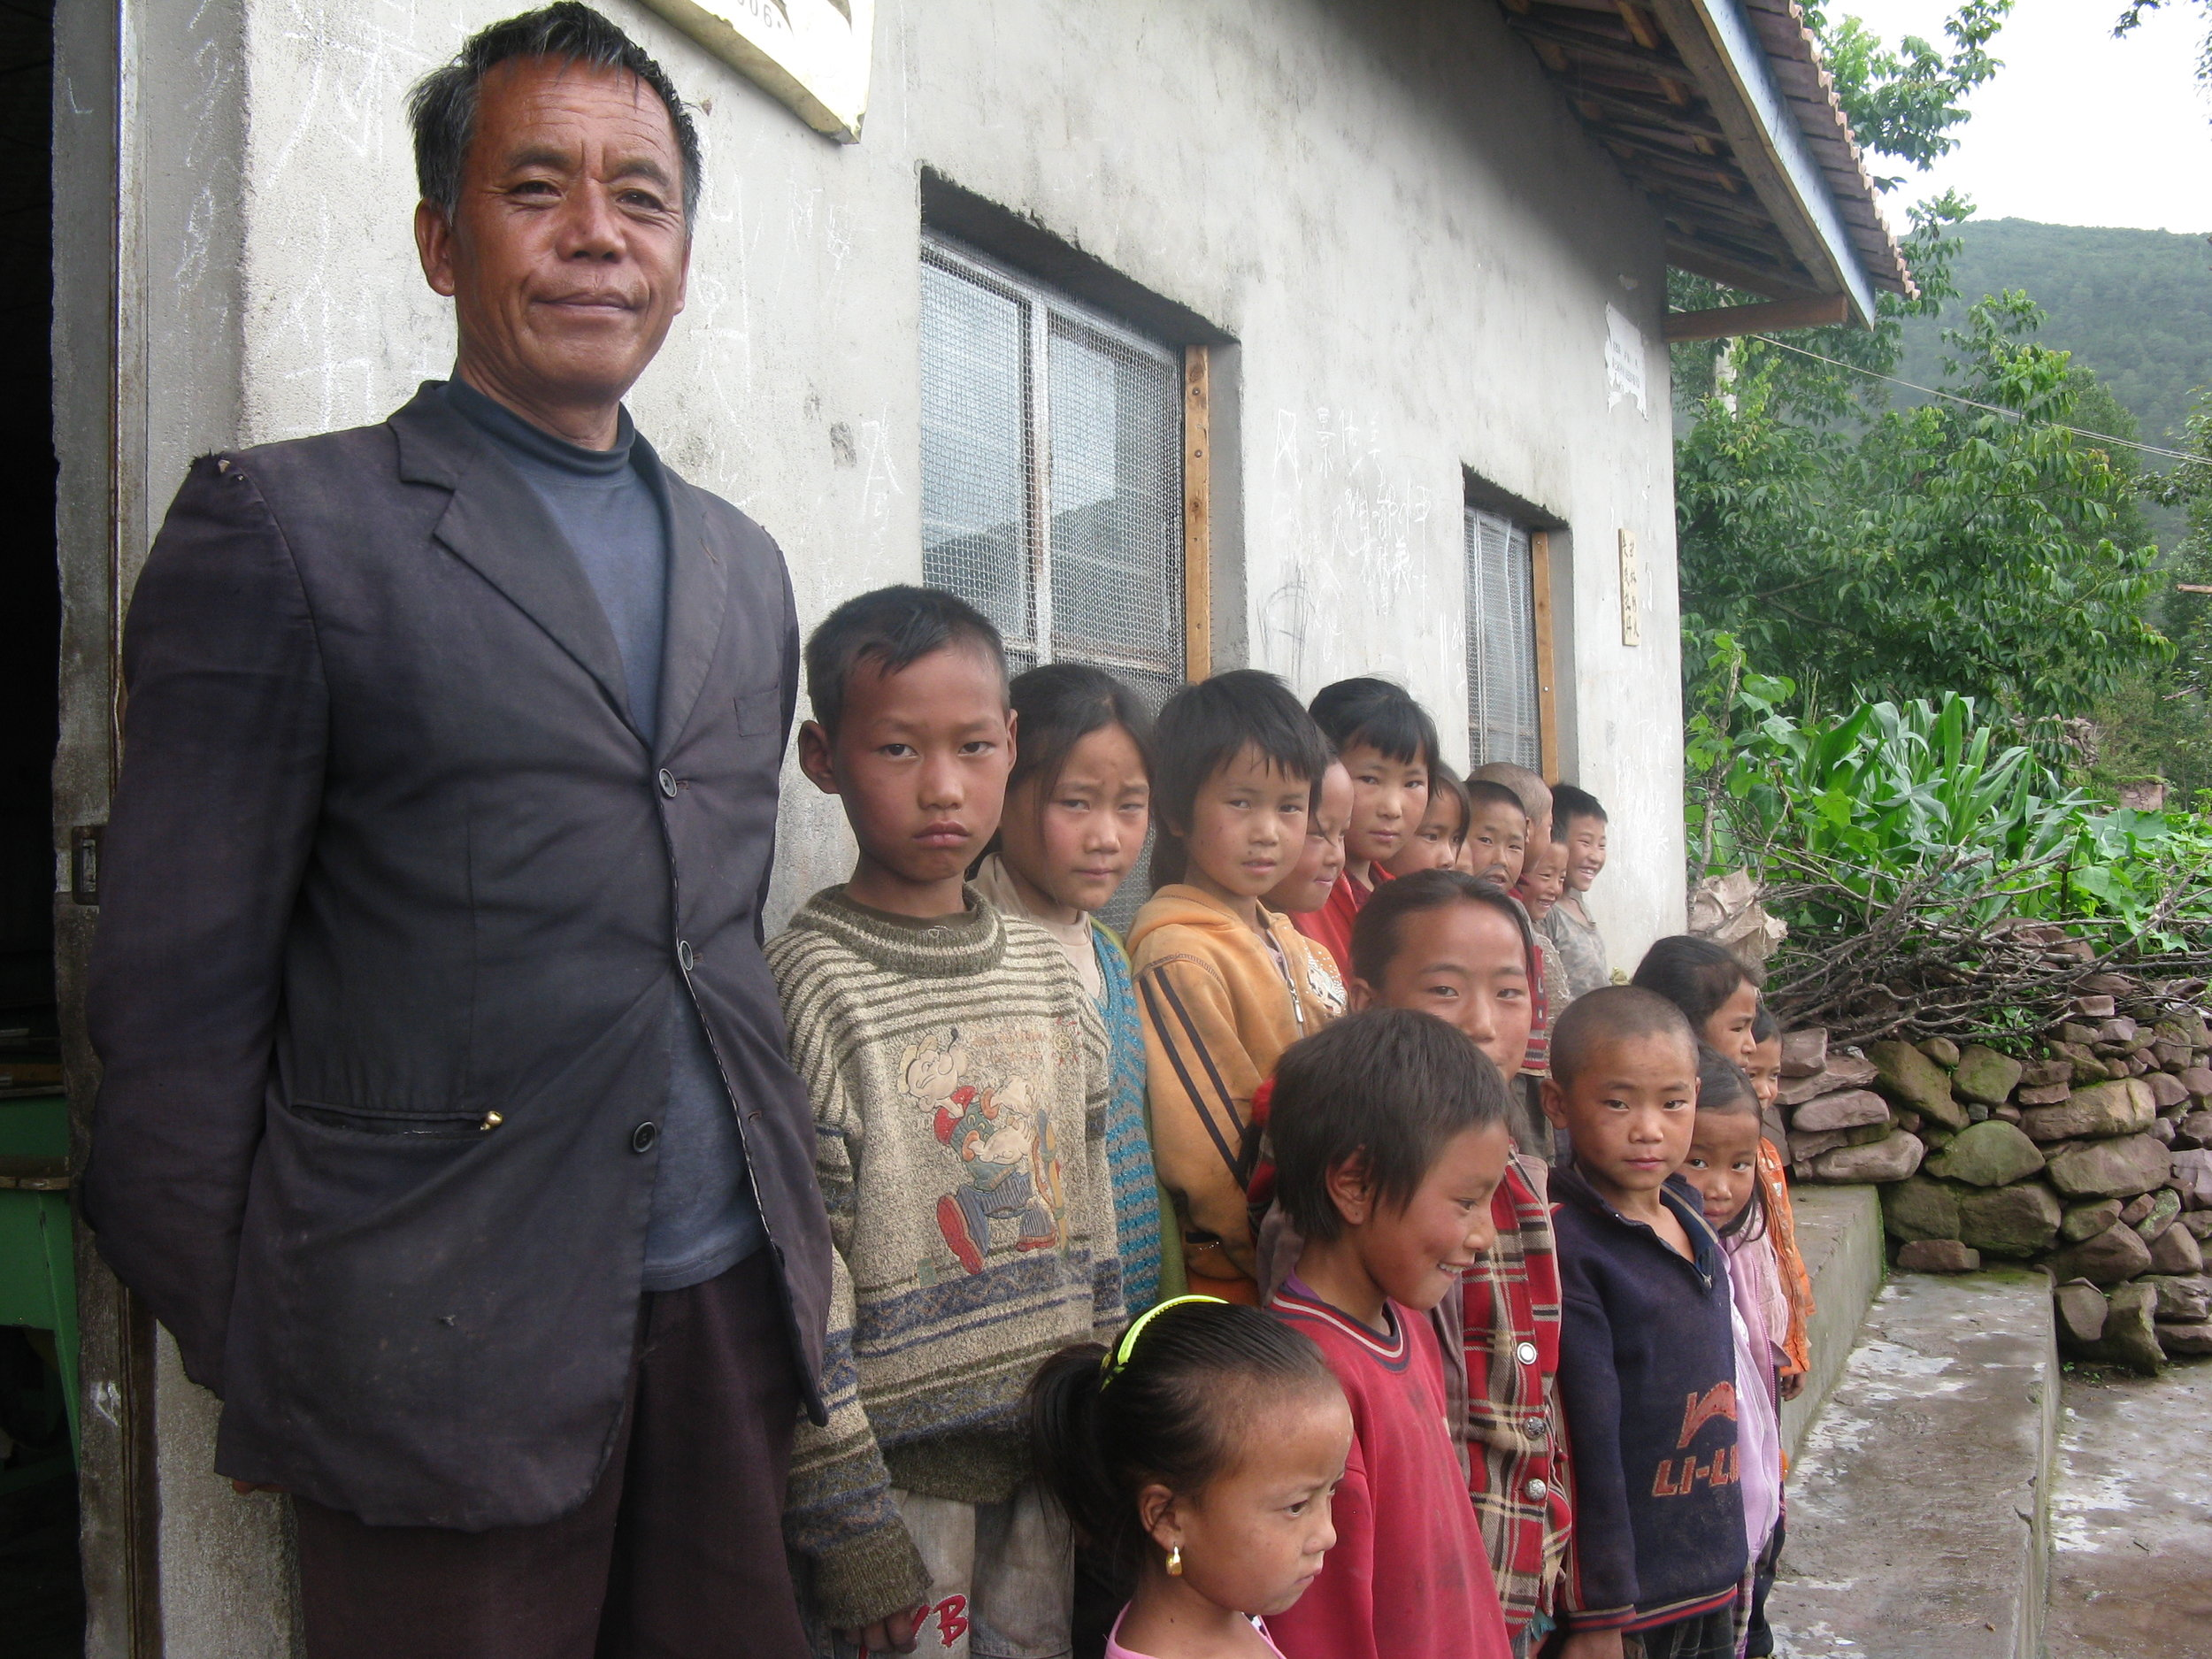 Christianity - There are at least 6 different cultural groups within the Nosu people. These groups don't frequently interact with one other despite being in close proximity. Mission work has been started in some of these people groups. However, there remain few believers (less than 1.5%) among the Nosu.In some of these cultural groups, there does not exist a single known believer or missionary. The widespread geographic area and mountainous terrain has hindered efforts to see a strong church planted within their midst. A New Testament translation exists in their language but the Old testament is still in the process of being translated.